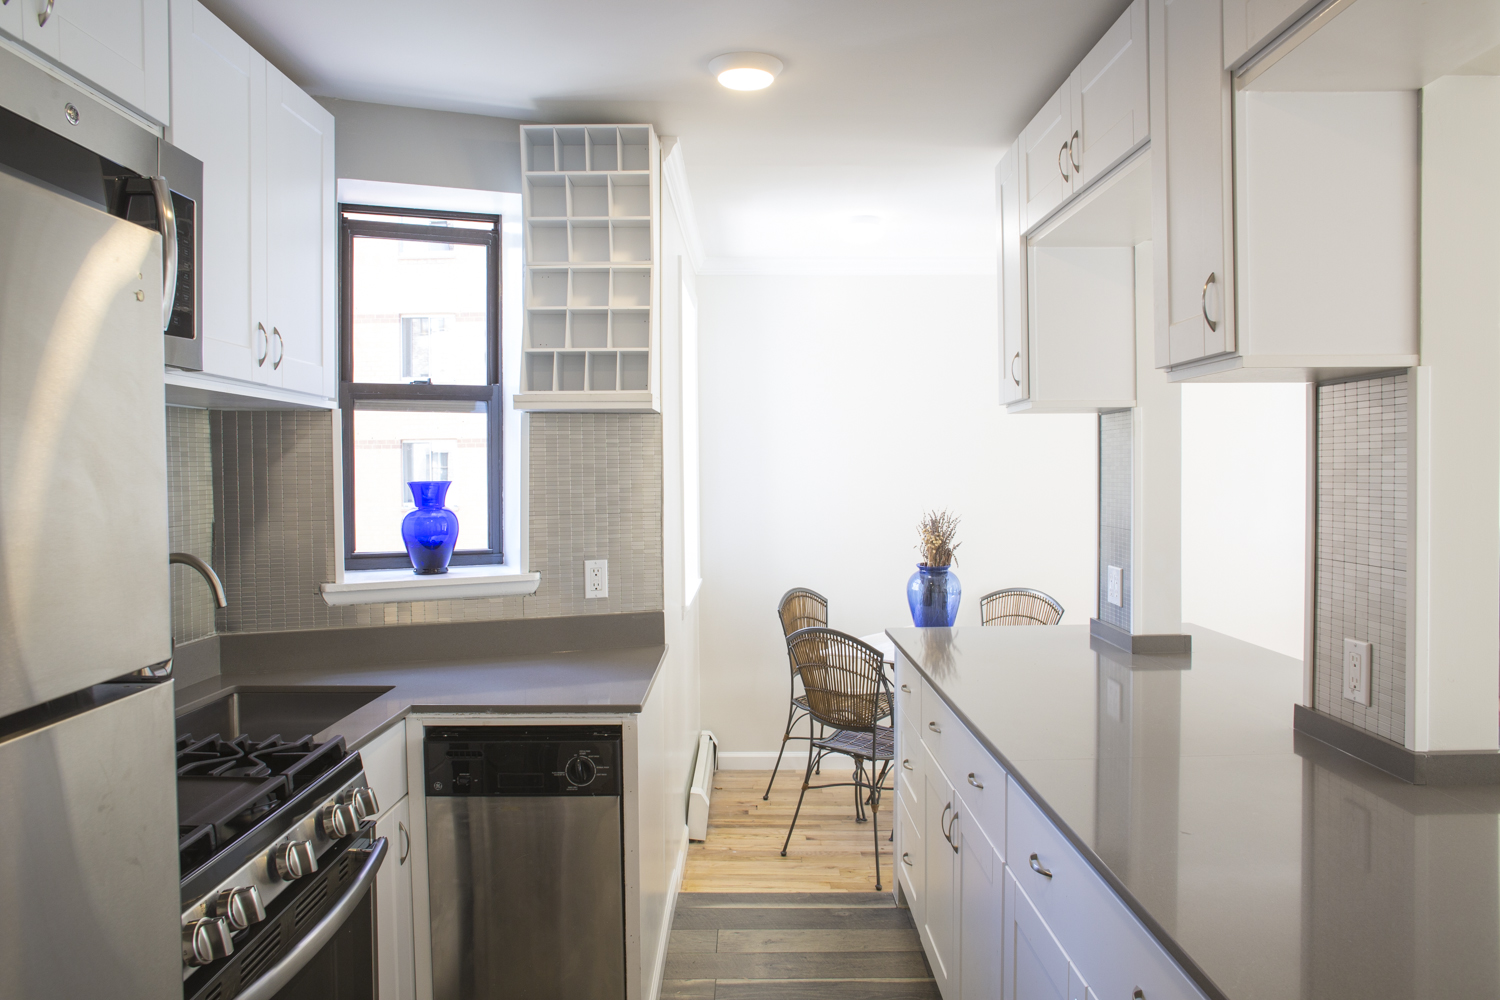 NEW LISTING: 319 Eat 105th Street #3A - Fantastic Open Kitchen with tons of Counter & Storage Space!